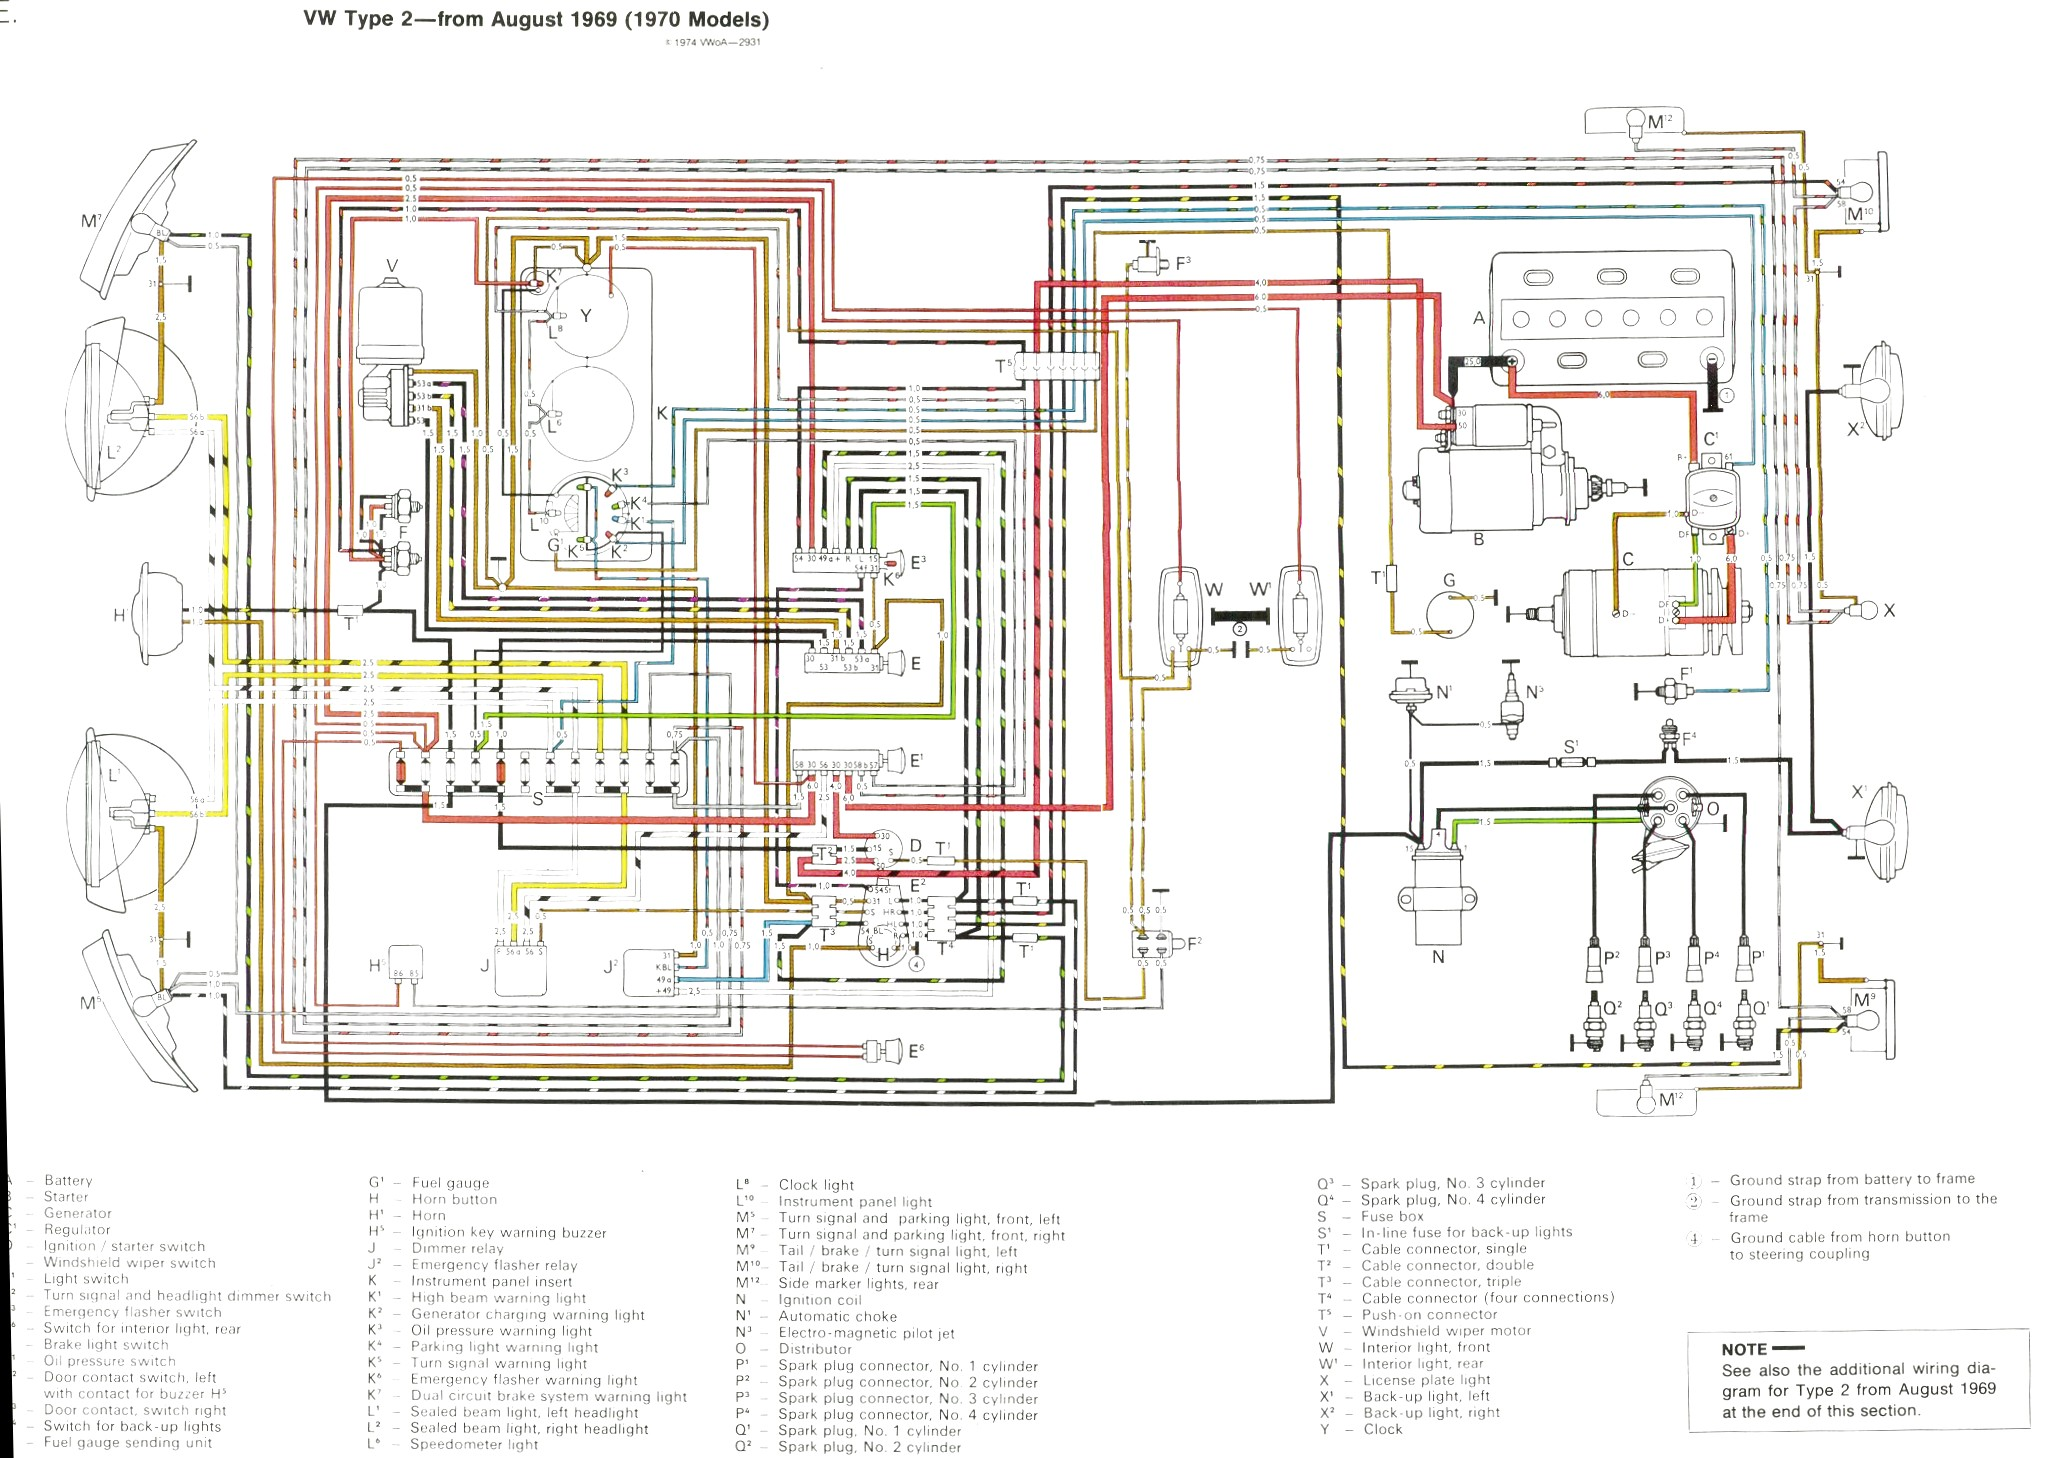 bus 69 70 vintagebus com vw bus (and other) wiring diagrams Wiring Harness Diagram at fashall.co